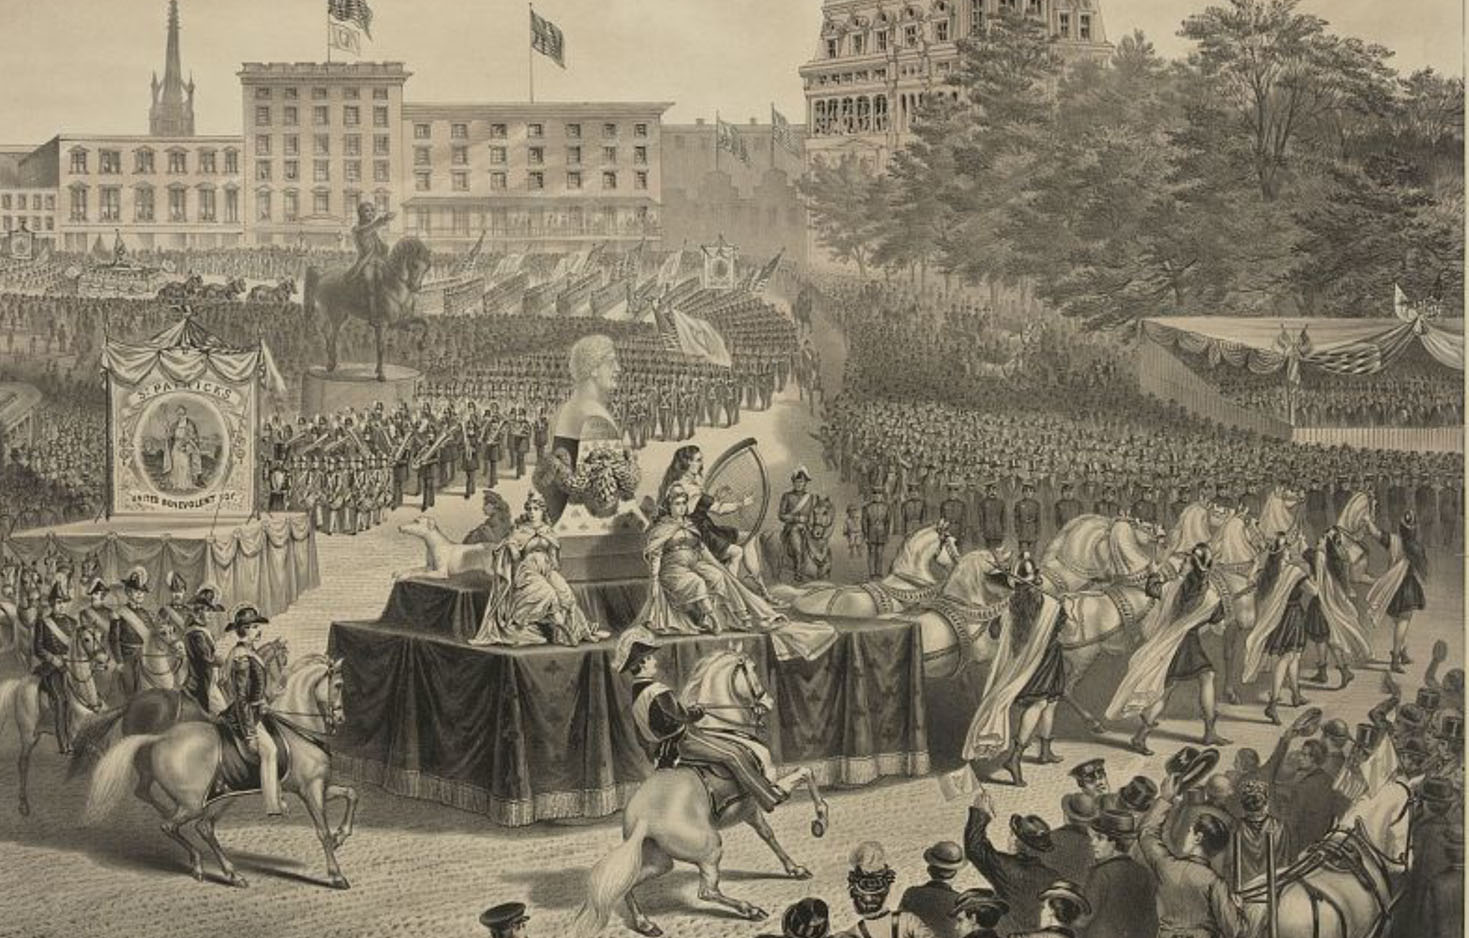 Illustration depicting a massive cheering crowd gathered in Union Square, watching elaborate horse-drawn floats and marching bands pass by